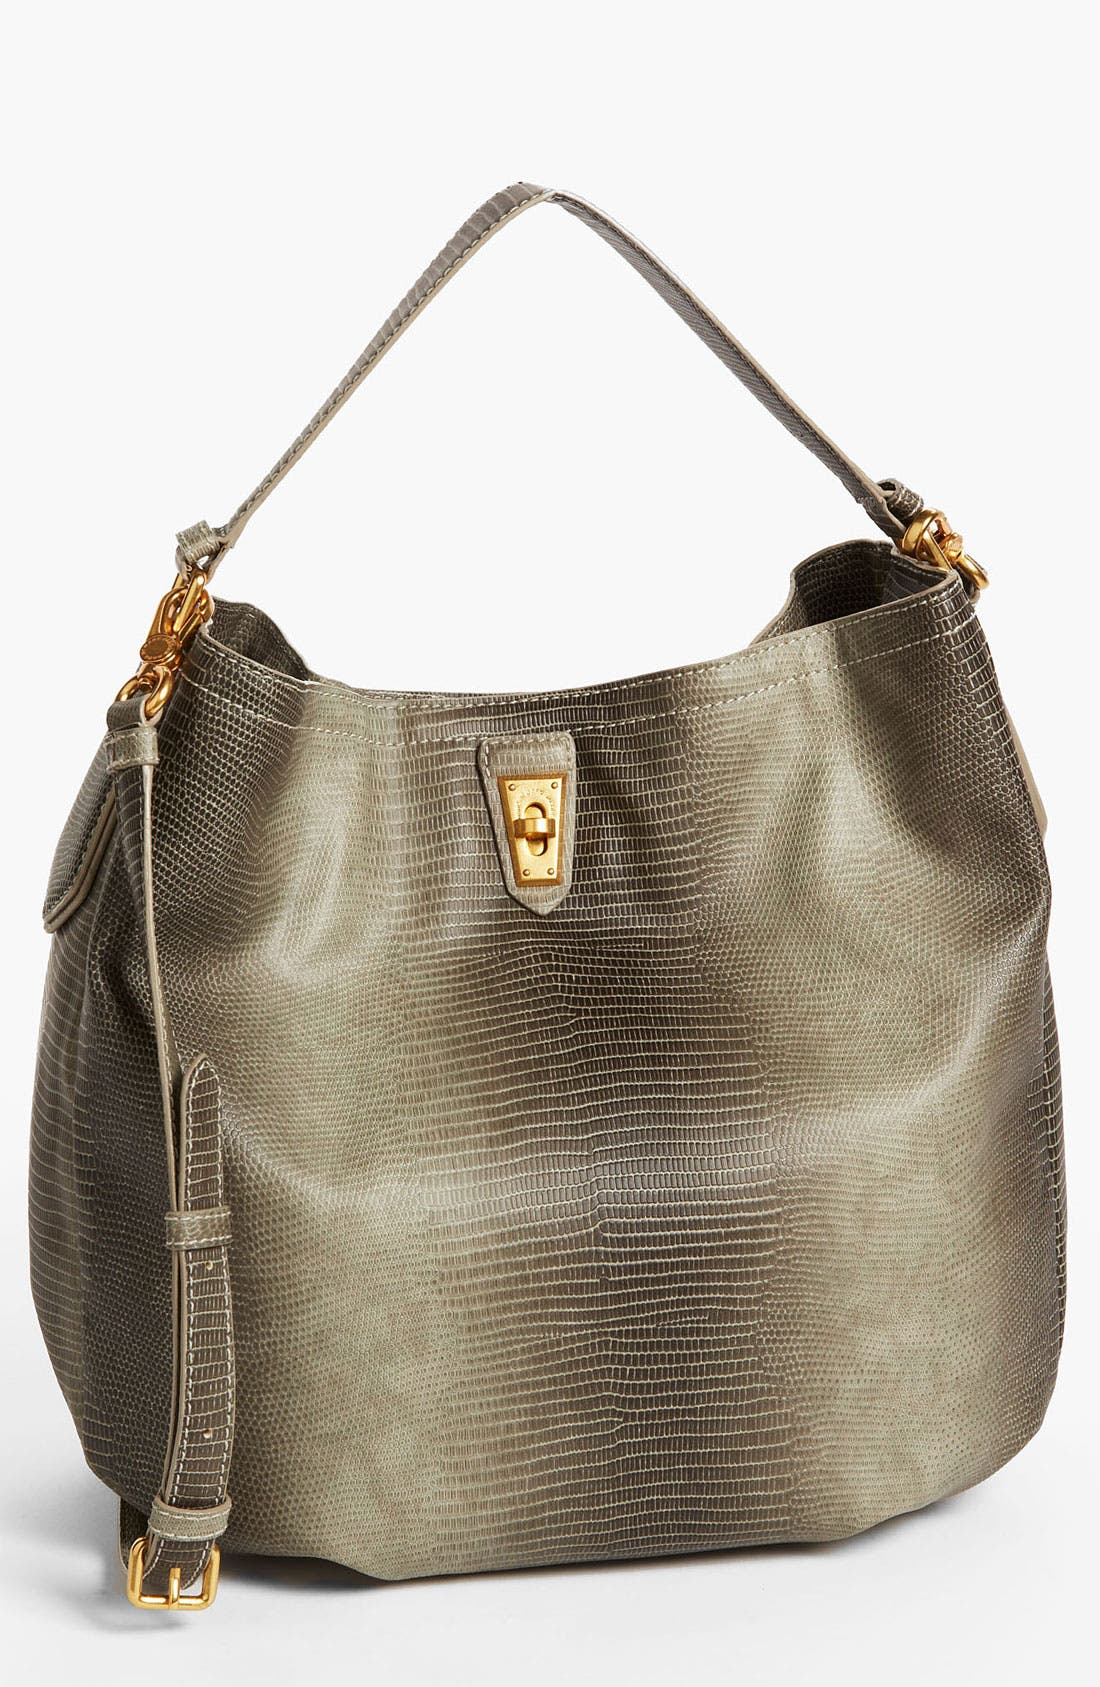 Main Image - MARC BY MARC JACOBS 'Lizzie' Embossed Hobo